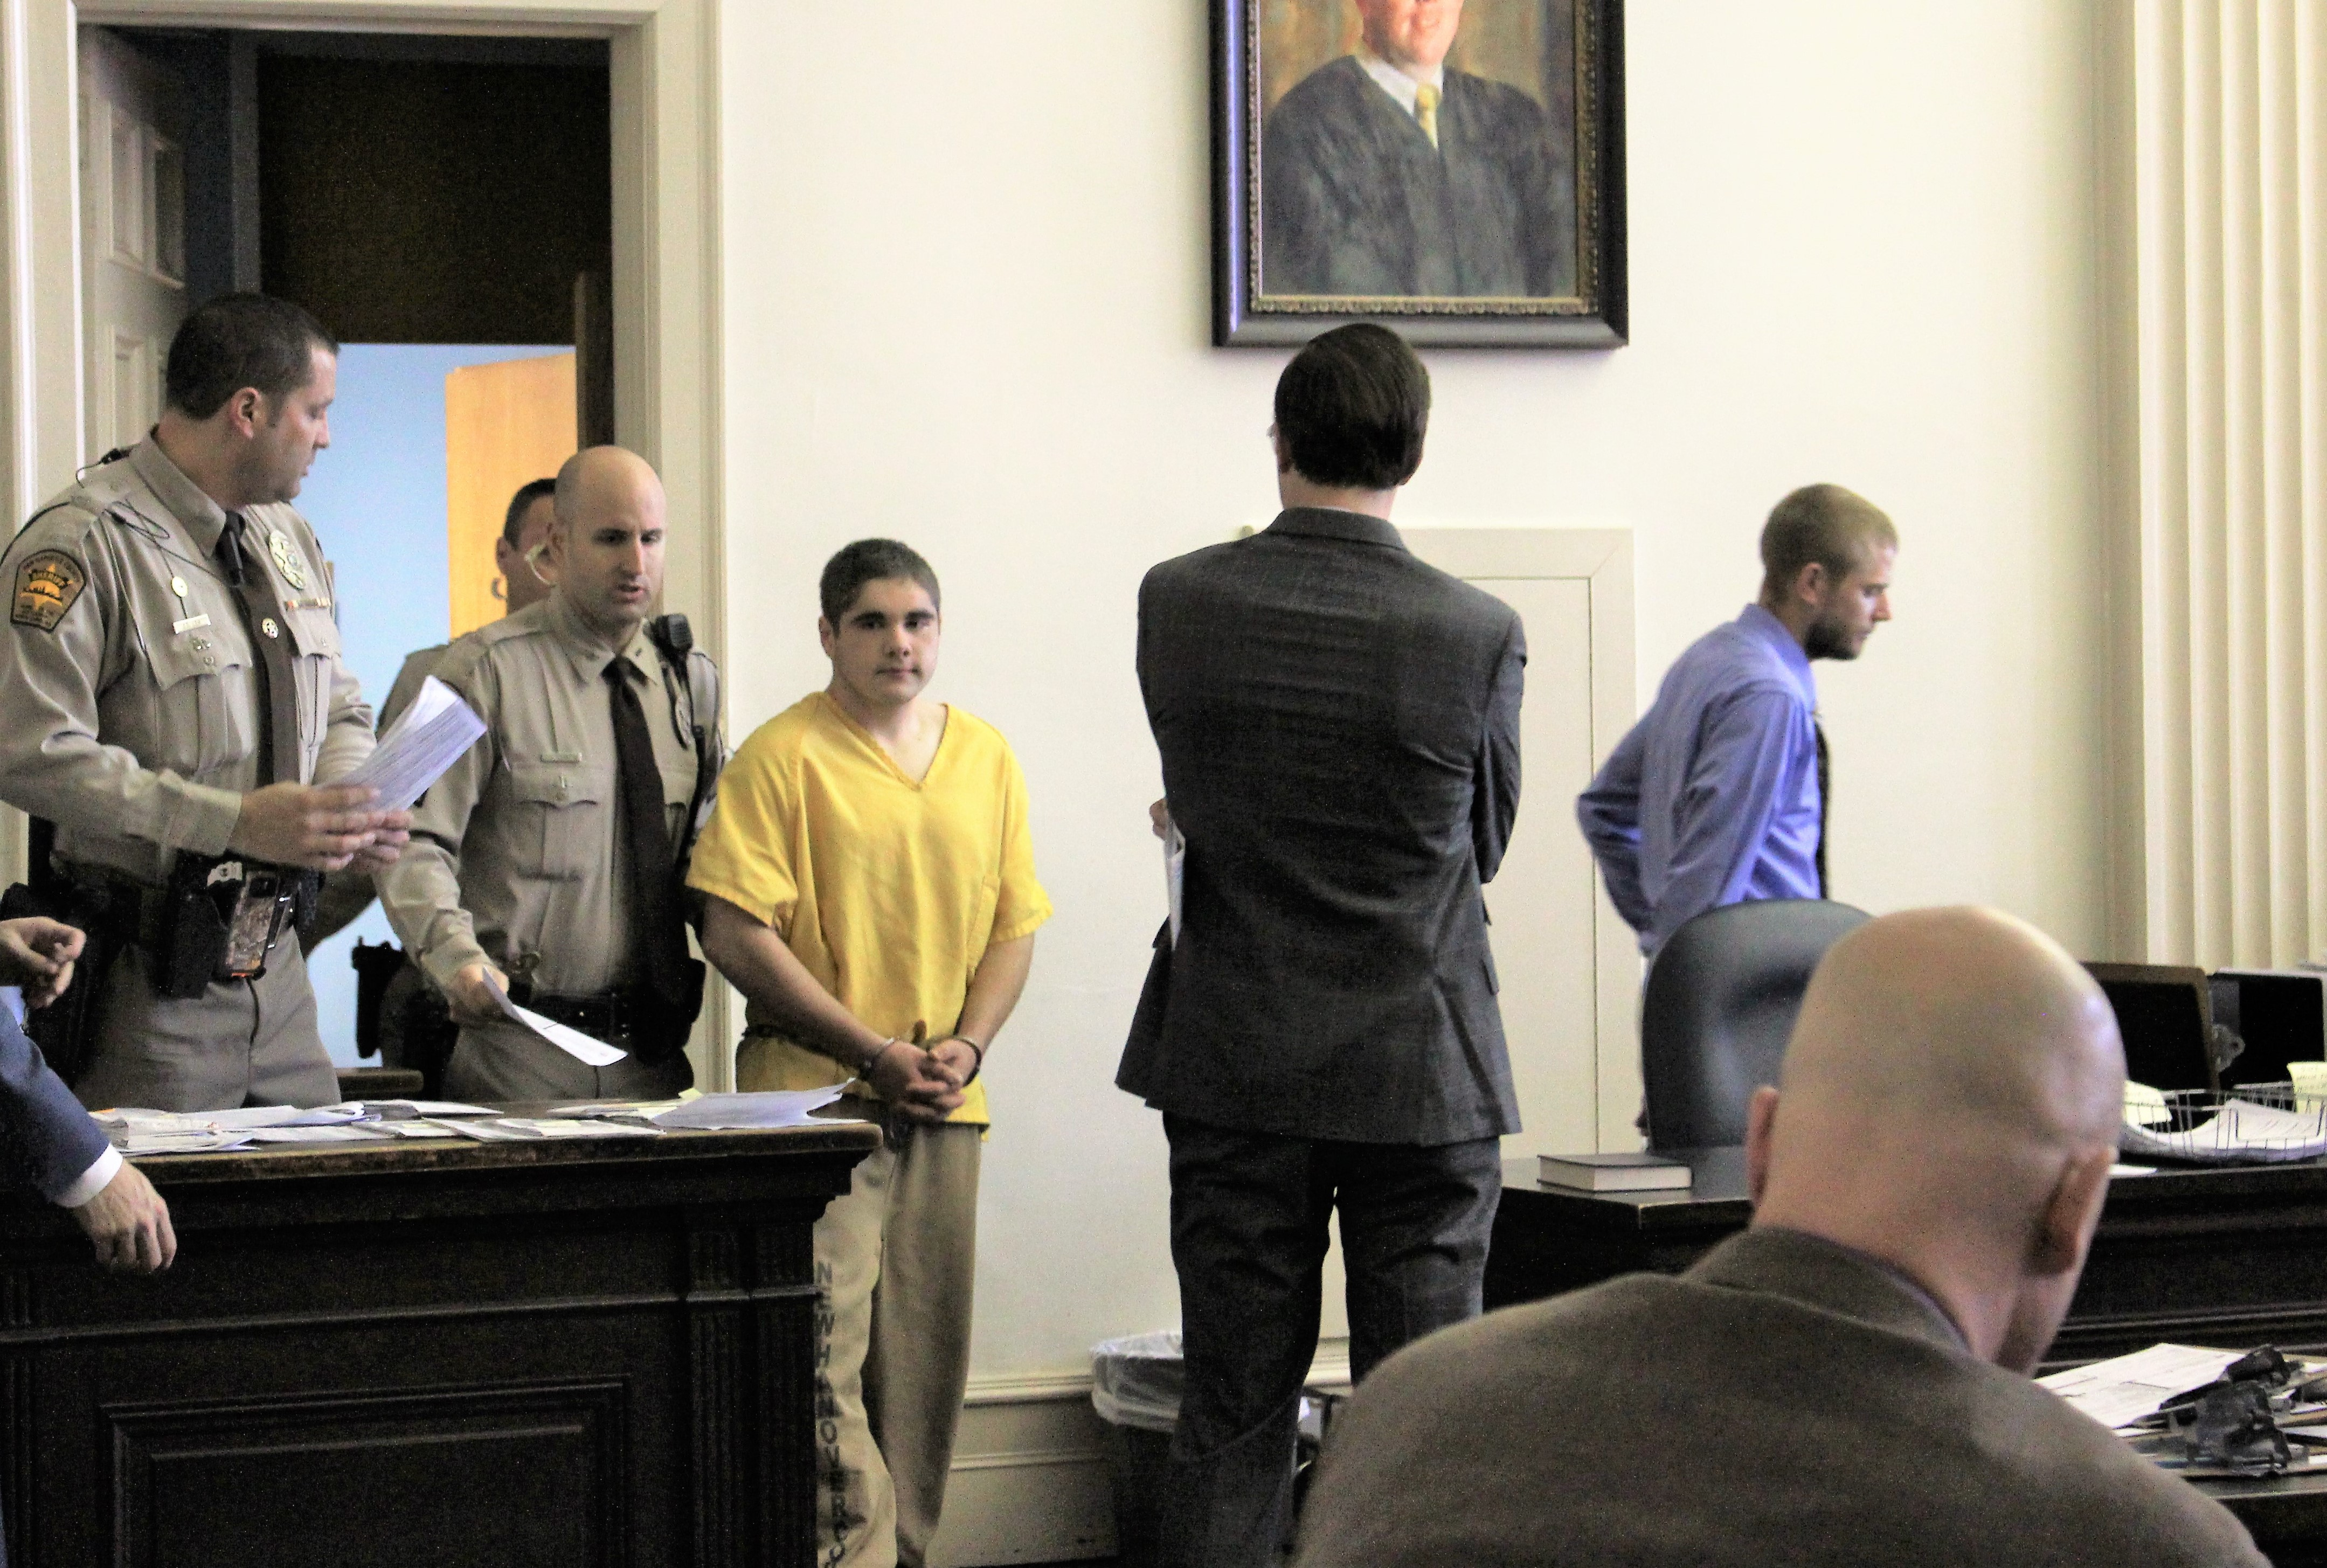 Seventeen year old Khai Ressler made his first appearance in New Hanover County District Court on Monday morning to face a first-degree murder charge. (Photo by Christina Haley)